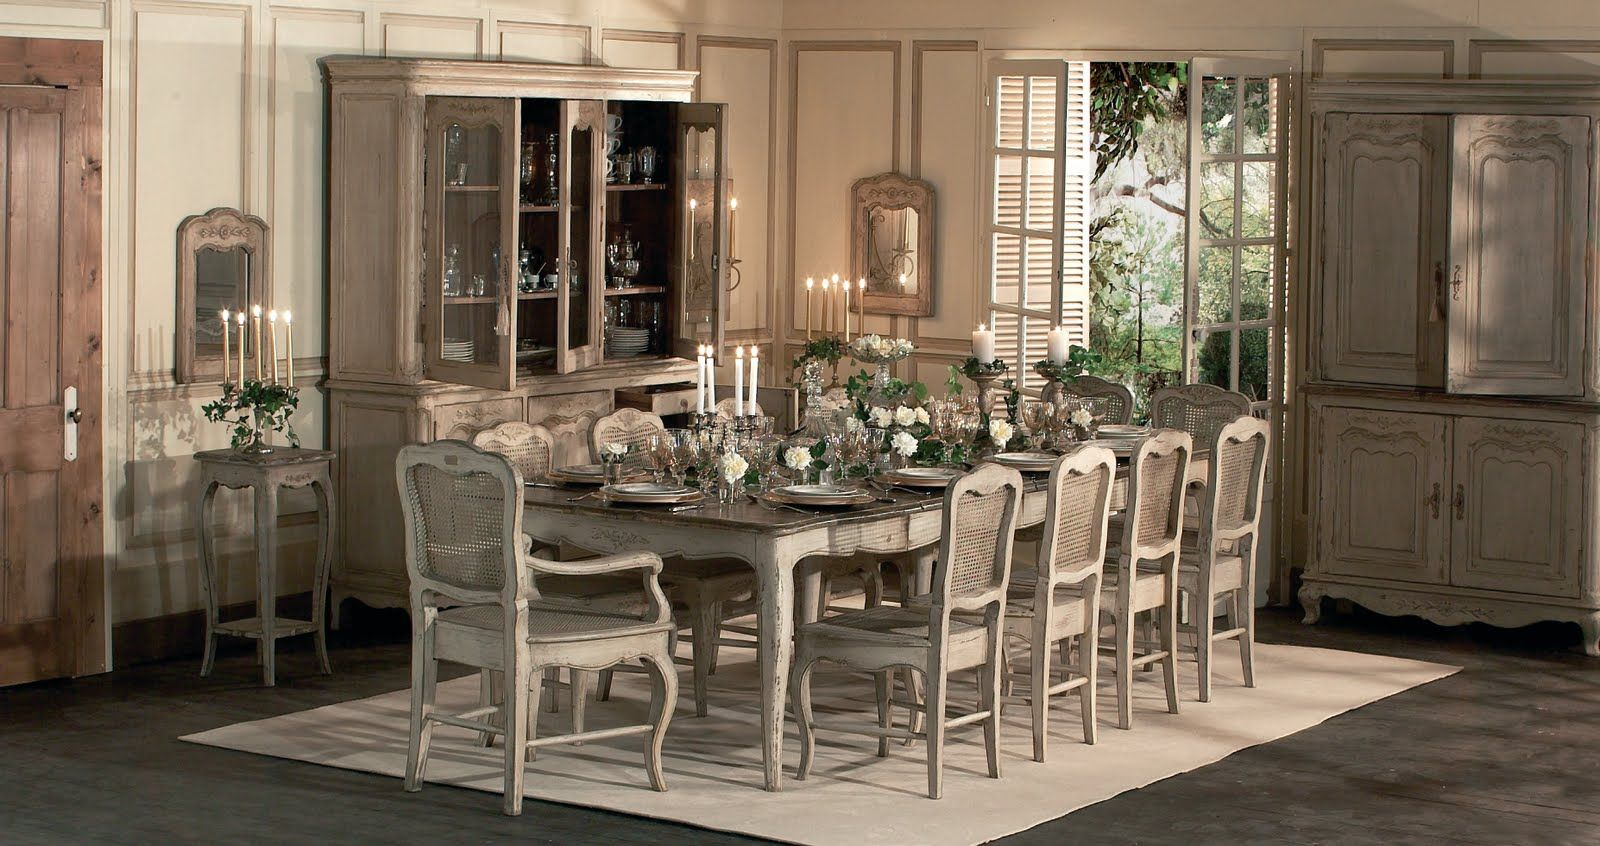 French Country Dining Set  On Hand Carved Solid Wood French Endearing Country French Dining Room Set Design Decoration